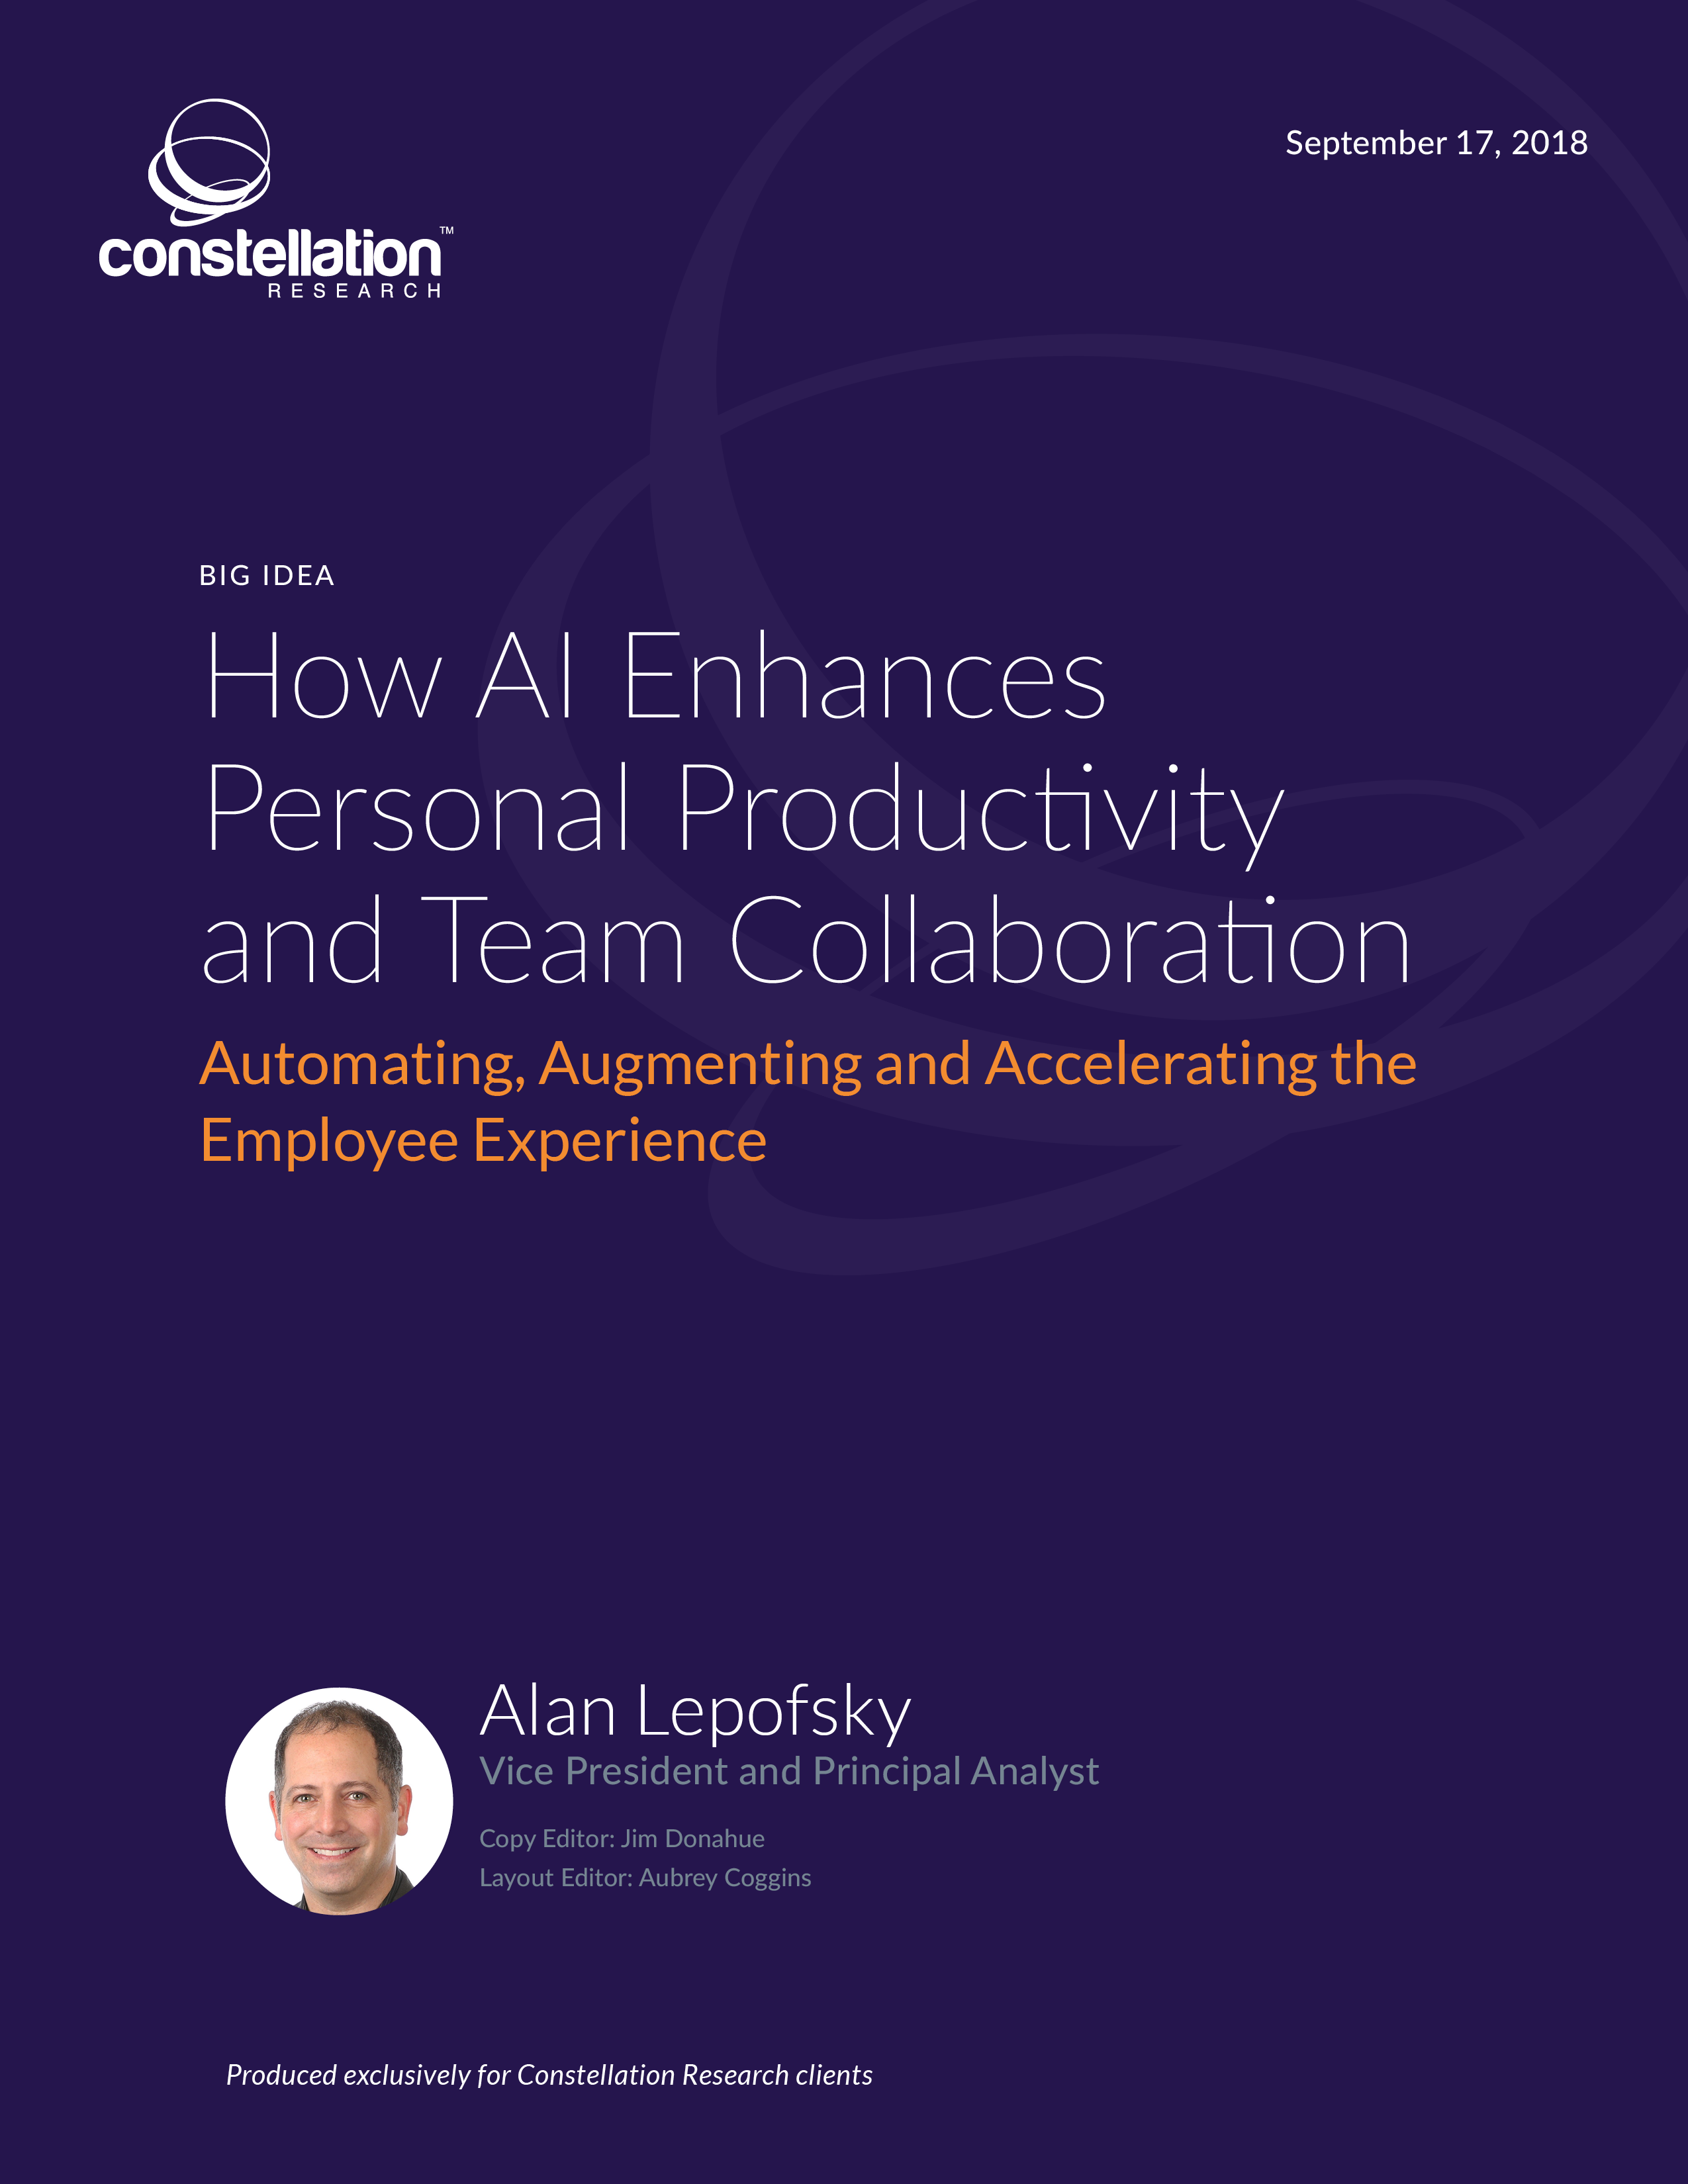 How AI Enhances Personal Productivity and Team Collaboration